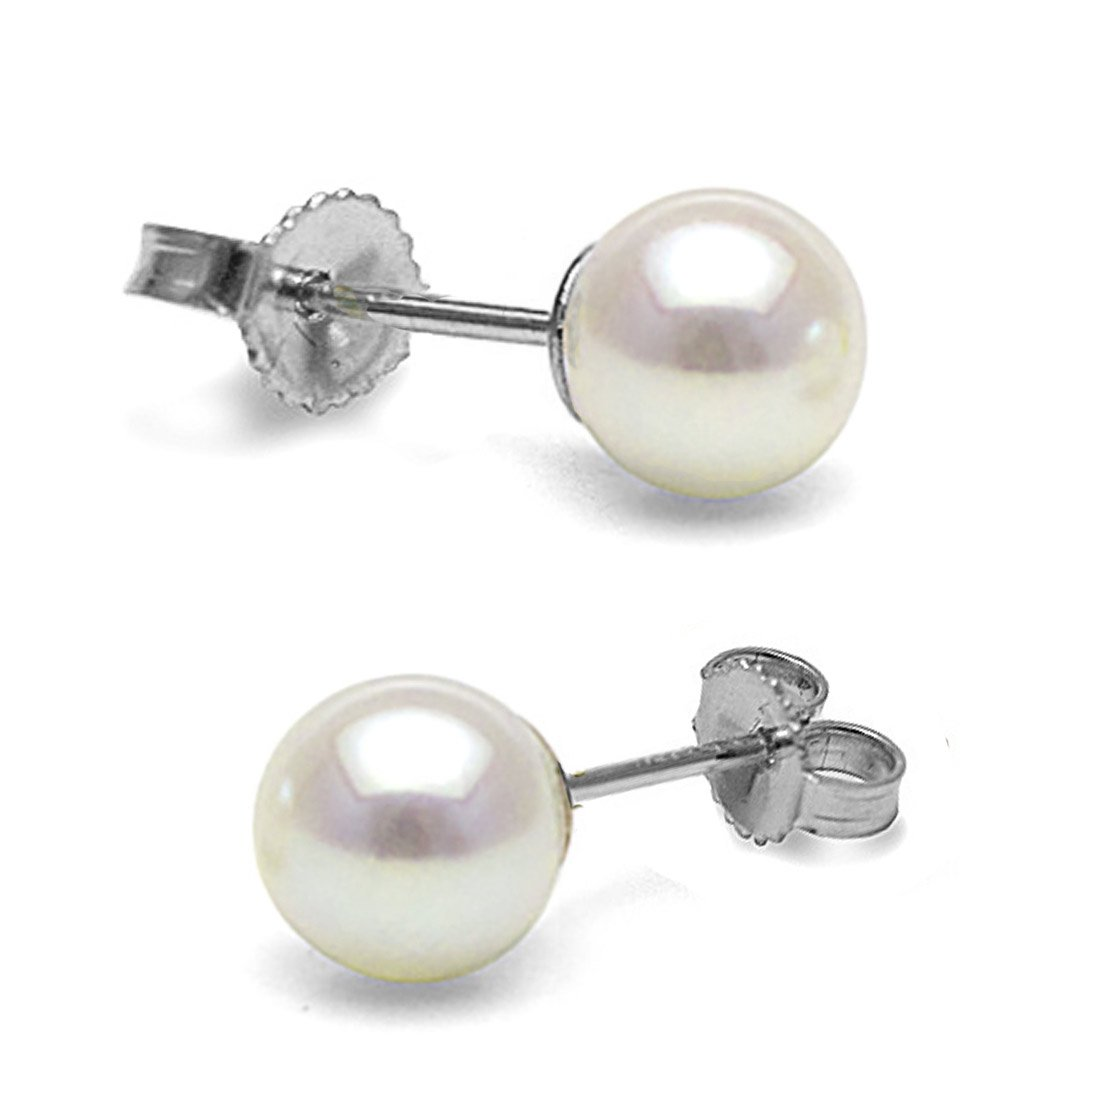 14K Cultured White Japanese Akoya Pearl Stud Earrings, AAA Quality (white-gold, 6.0-6.5mm)